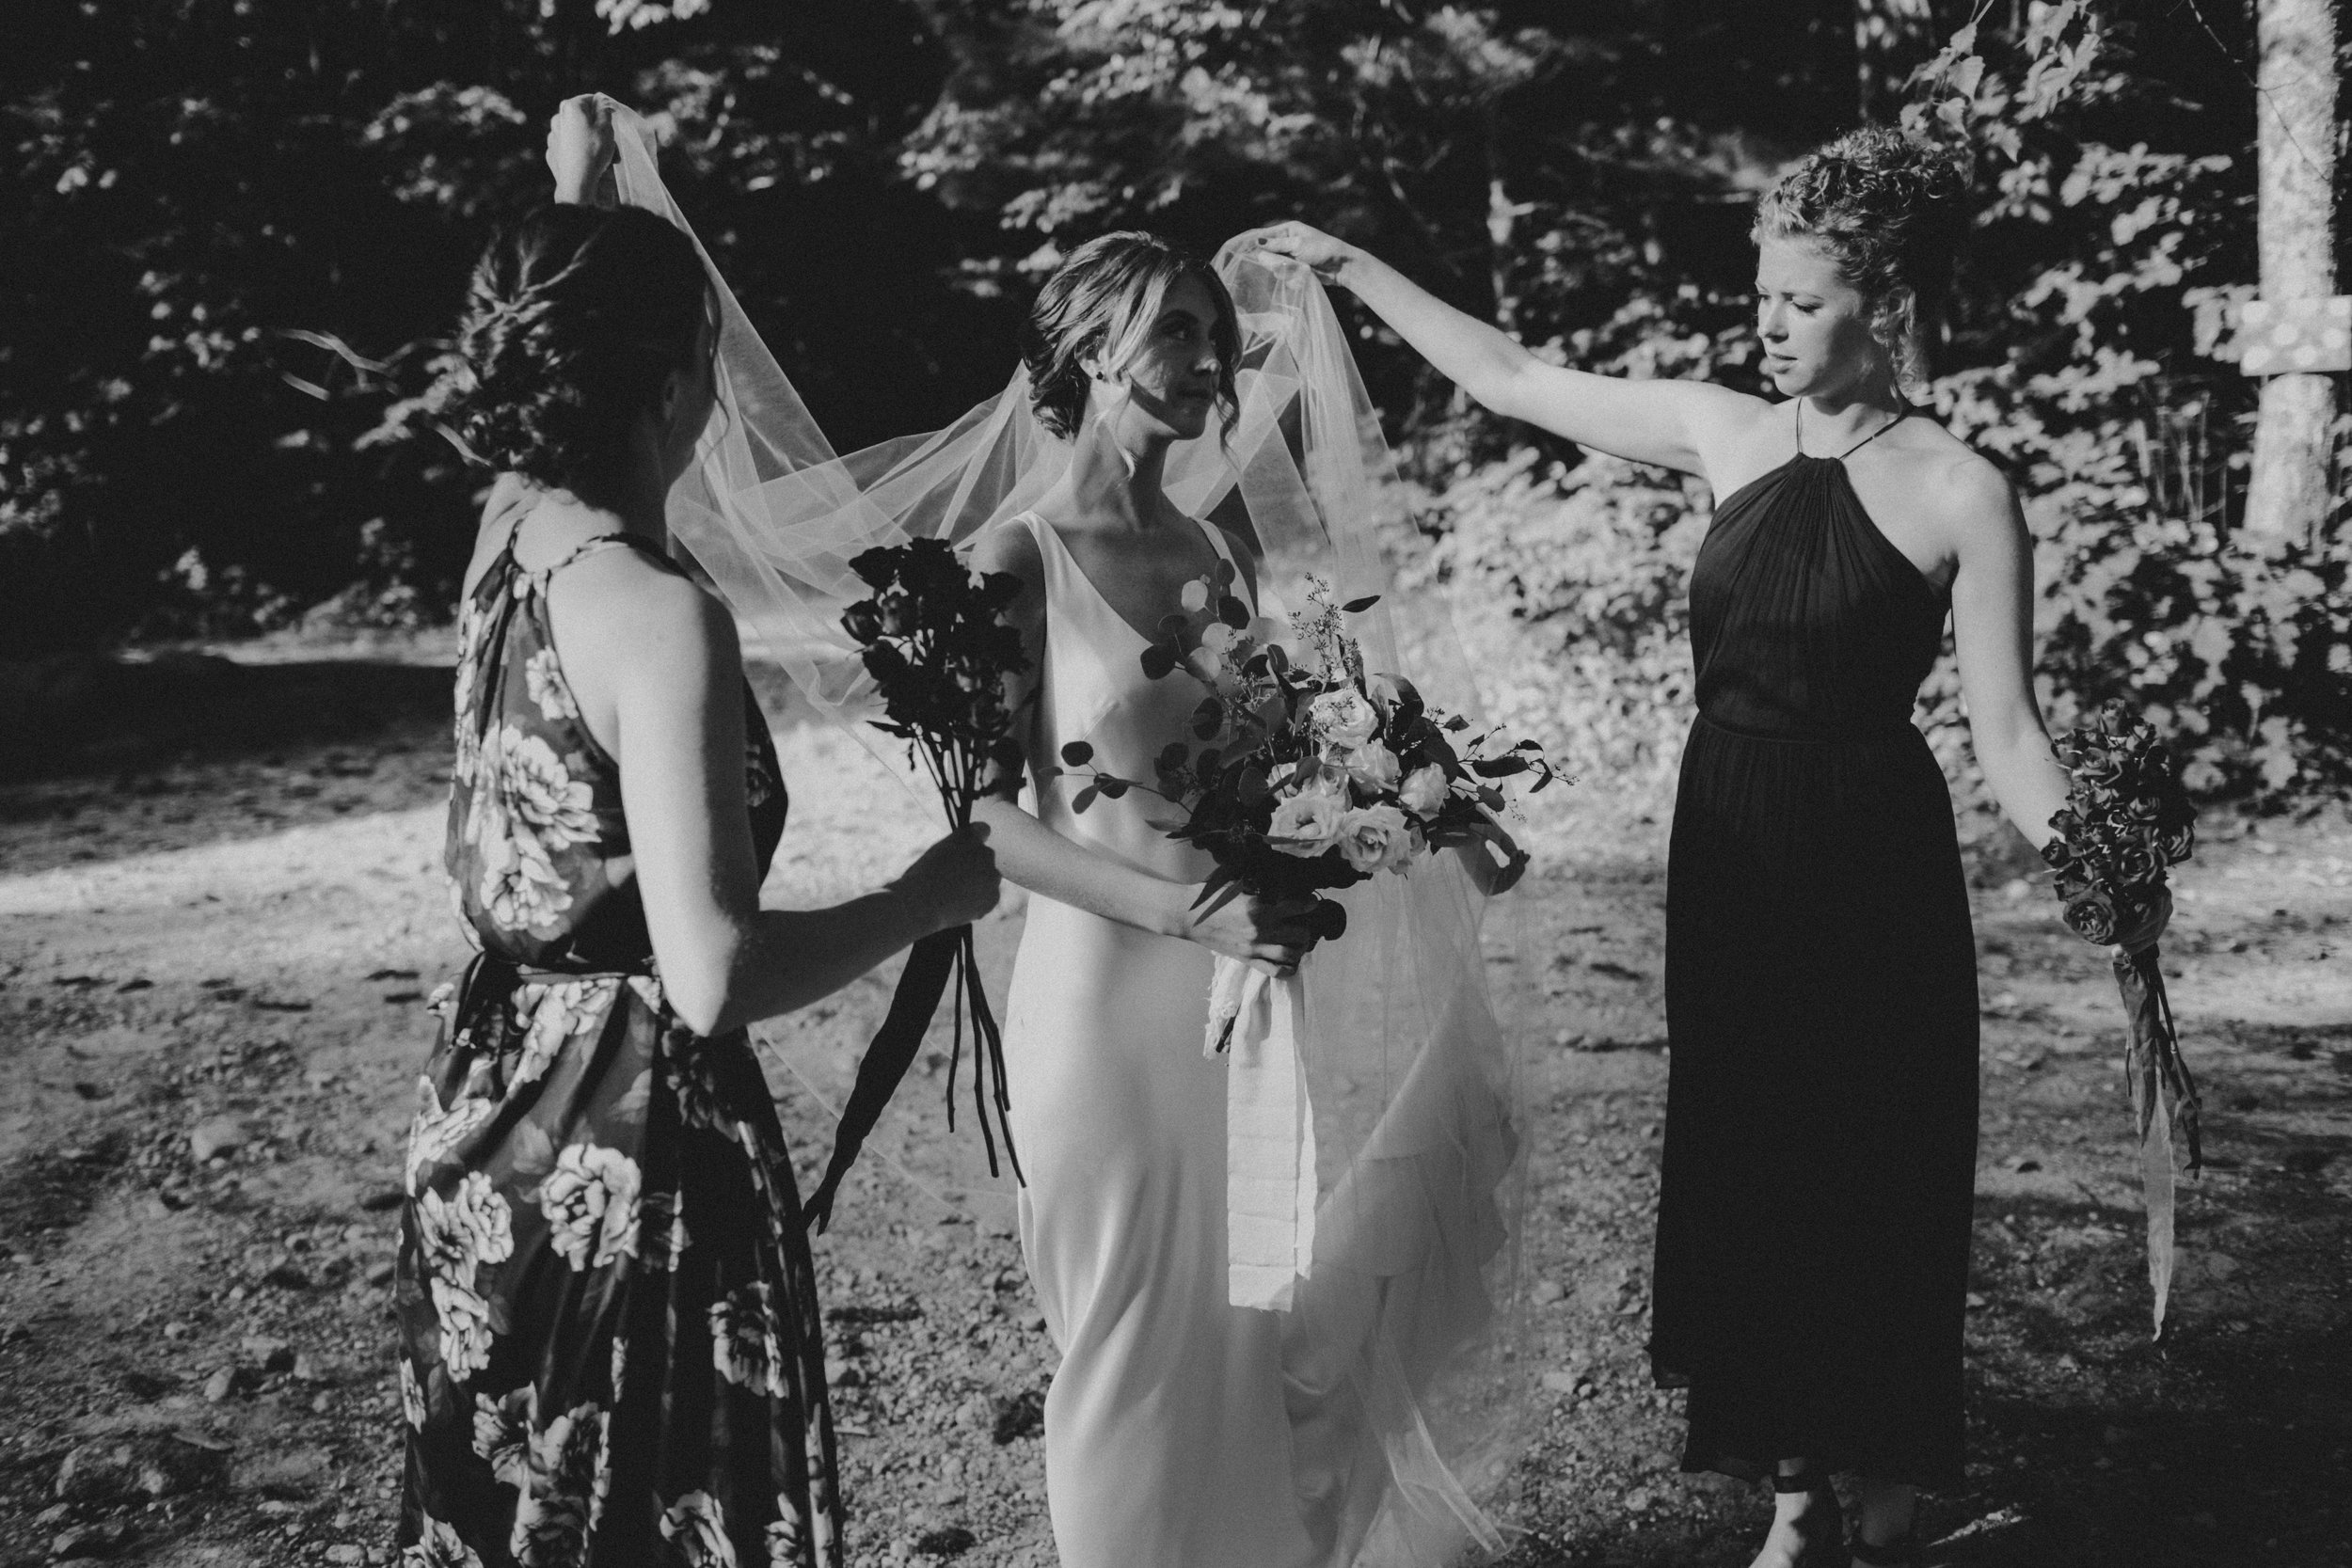 windsor mountain summer camp wedding NH chellise michael photography 1768.jpg